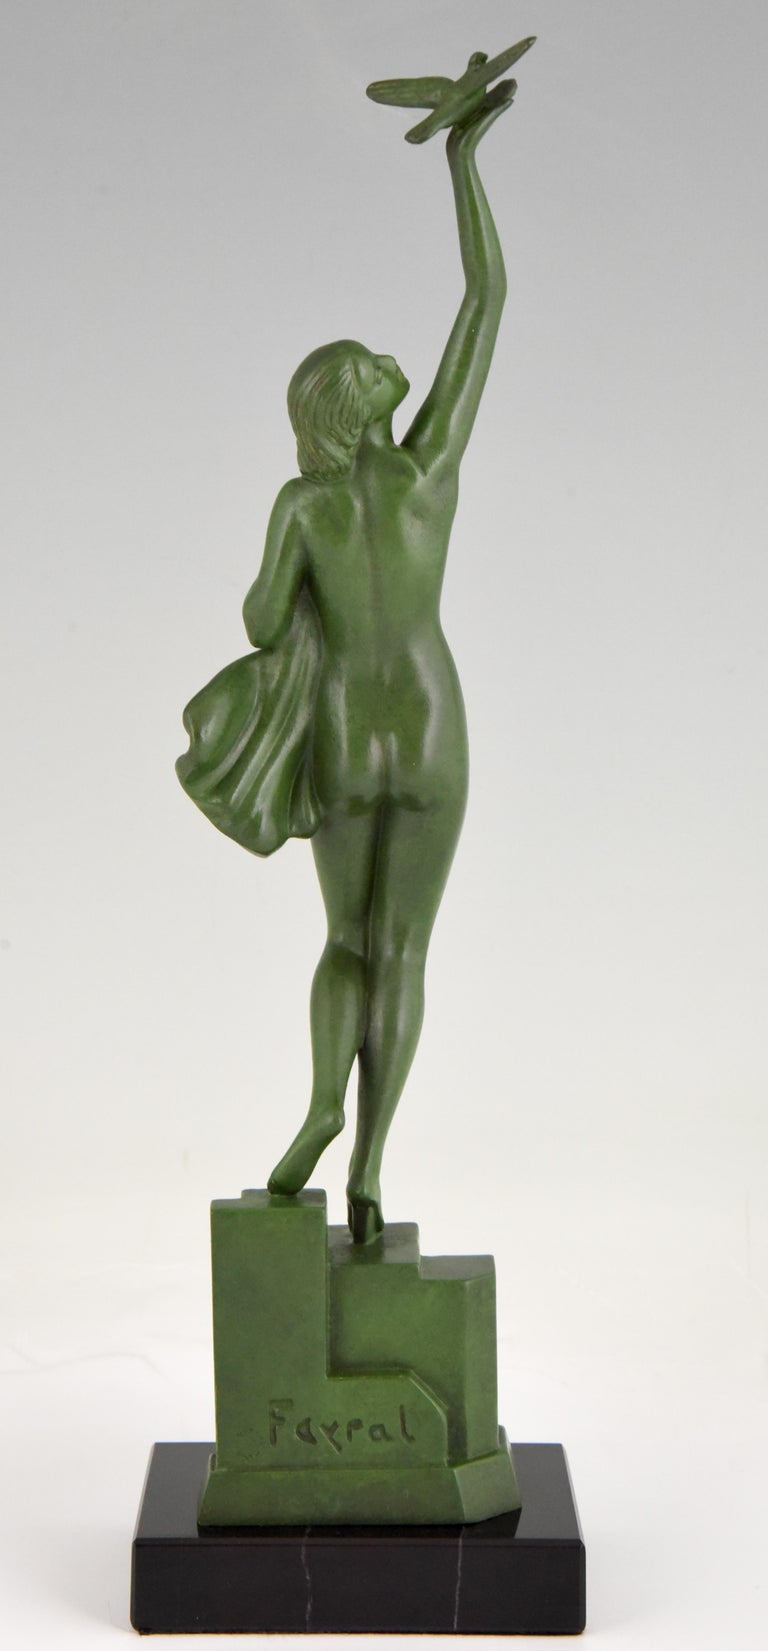 Art Deco Sculpture of a Nude with Dove Fayral Pierre Le Faguays, France, 1930 In Good Condition For Sale In Antwerp, BE